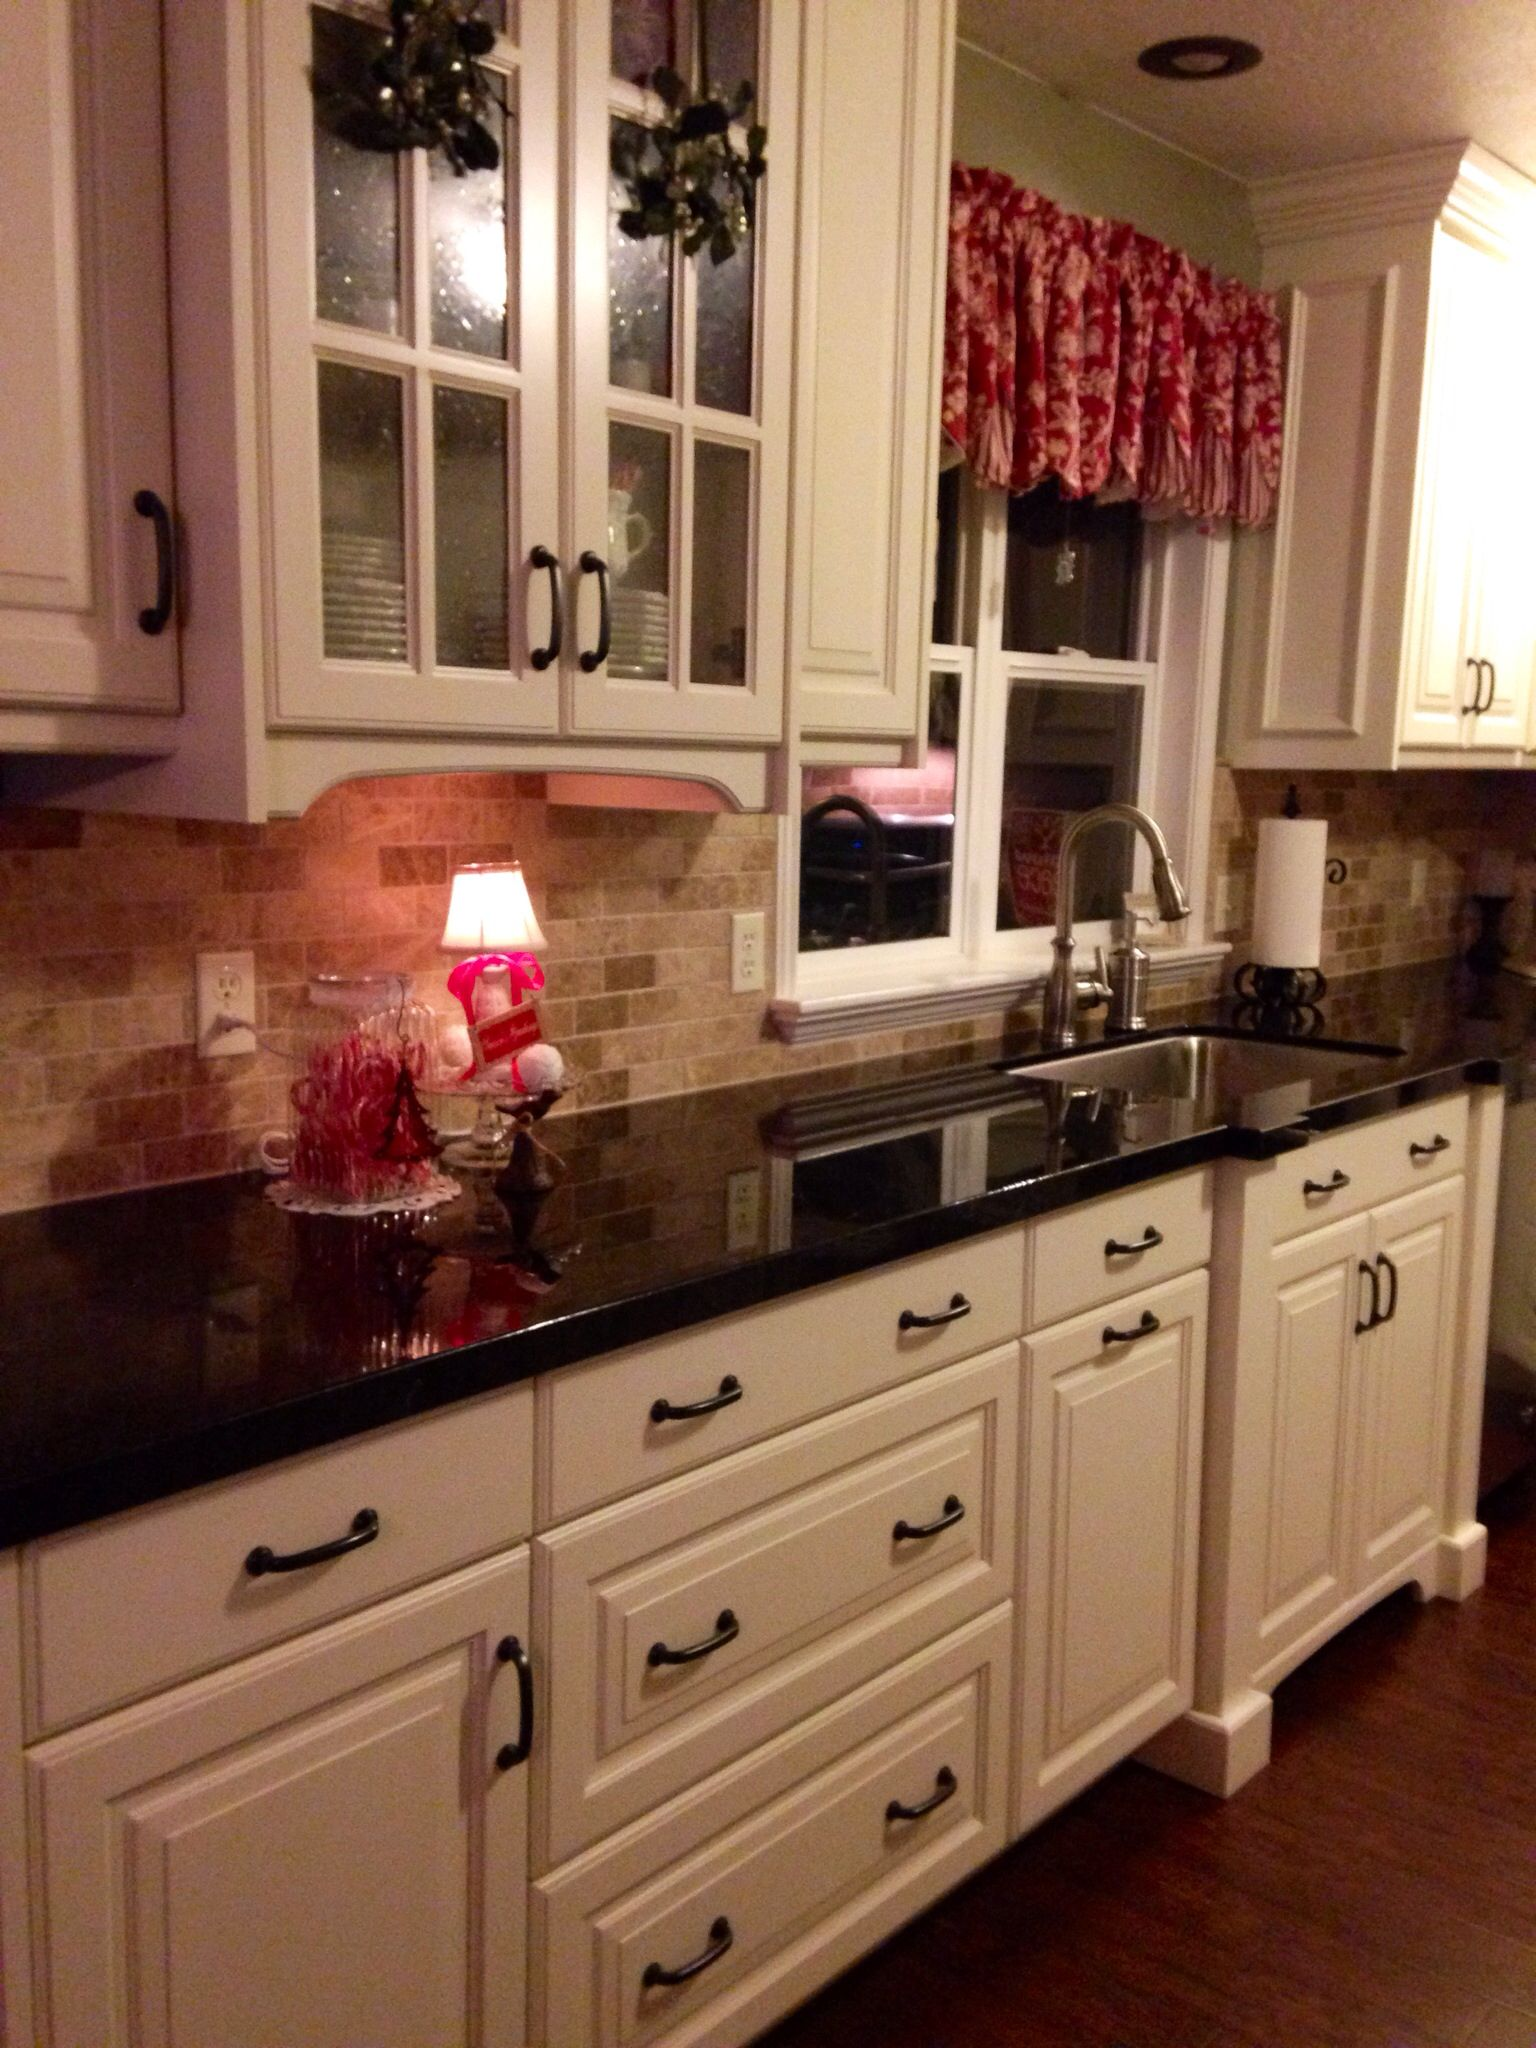 Dark Countertops With Dark Cabinets Off White Cabinets Brazilian Marron Cohiba Granite